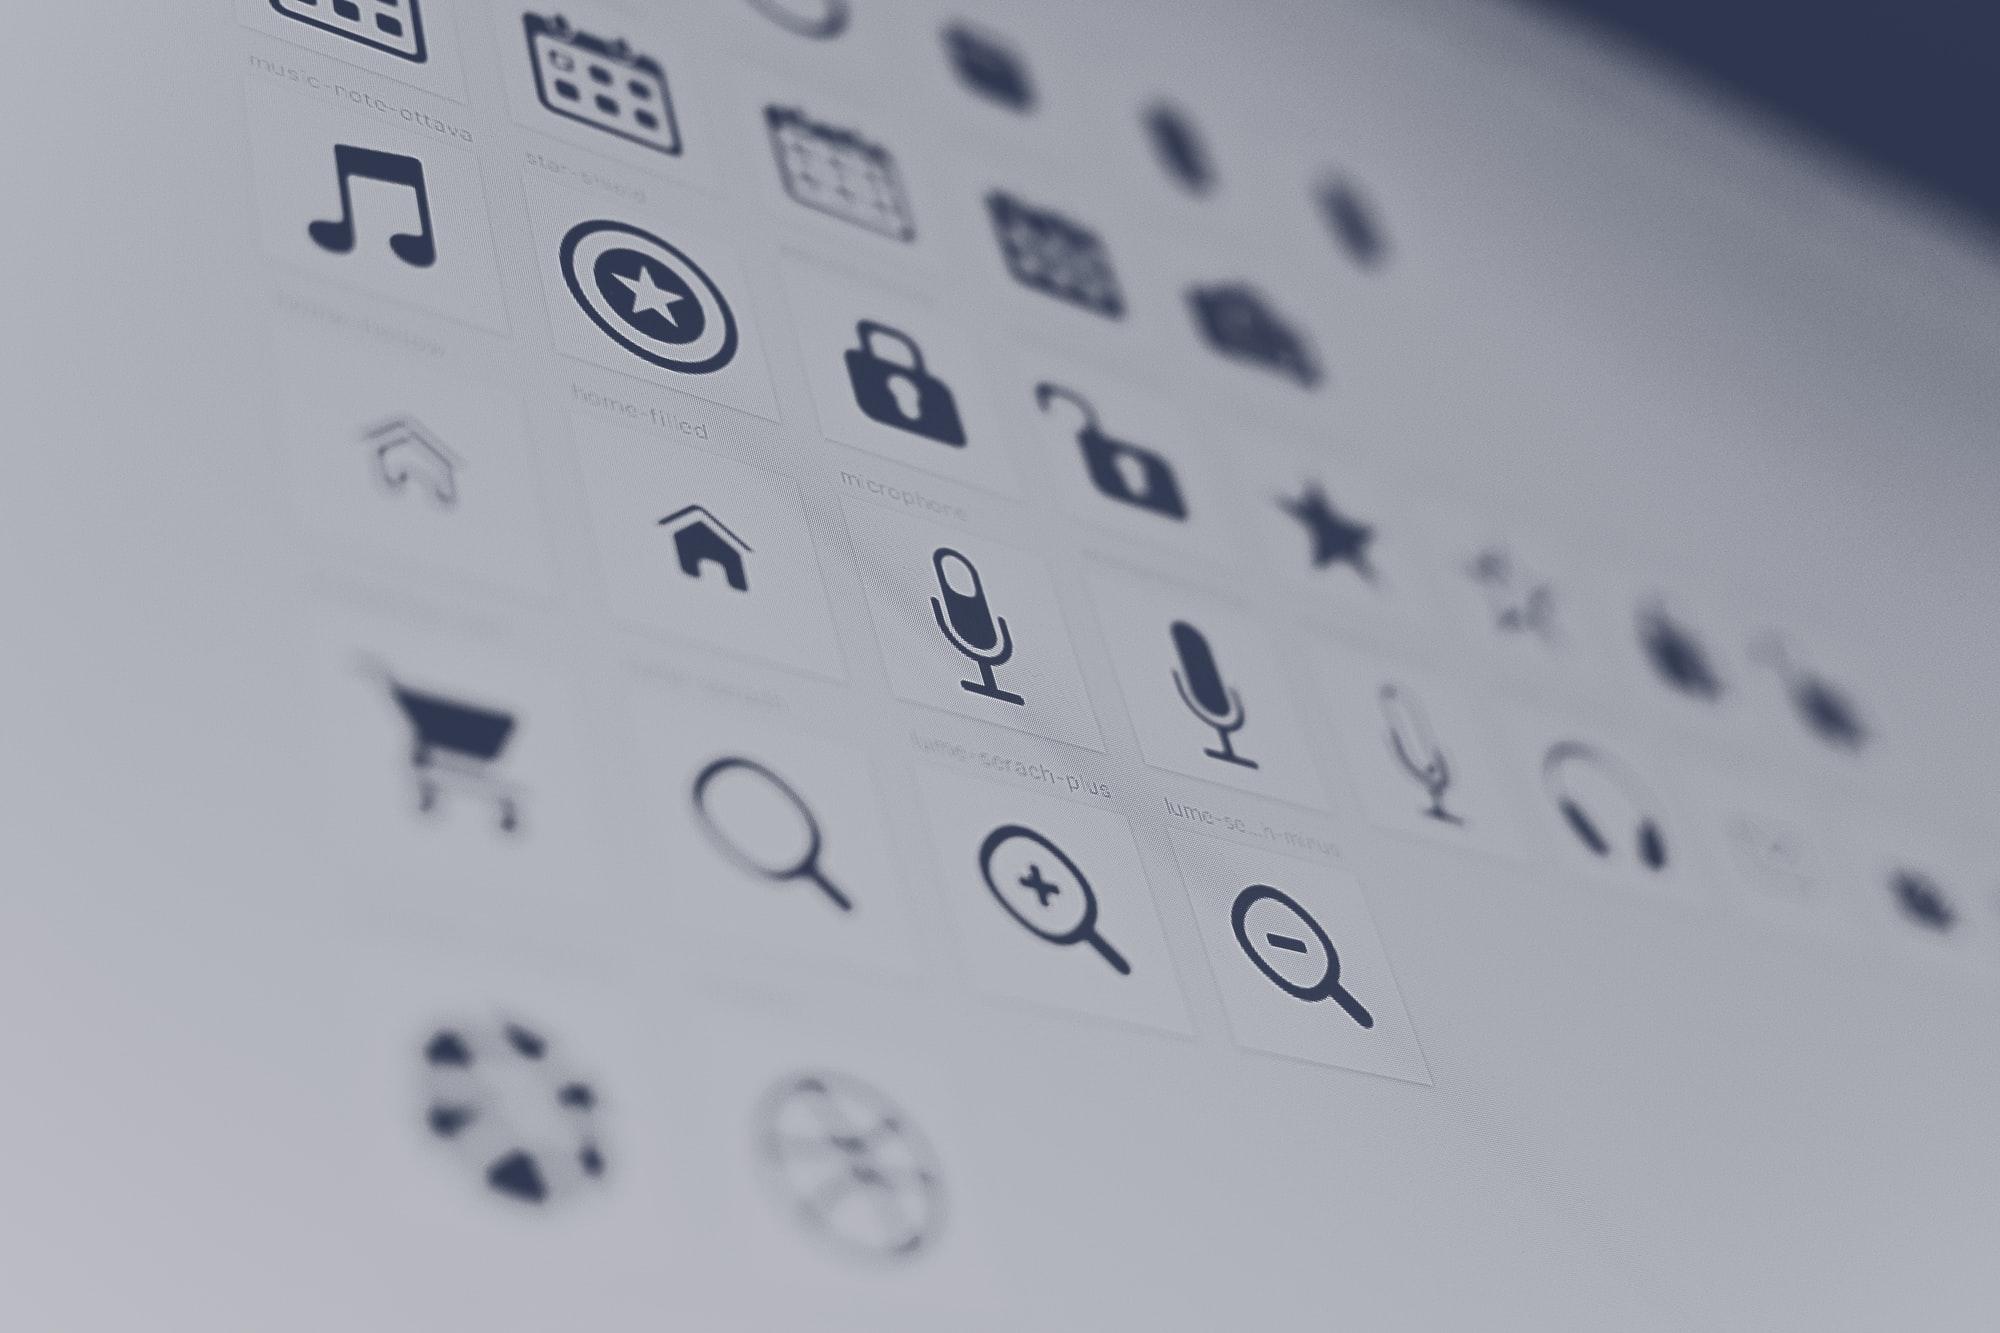 Design System - Icons for vue 3